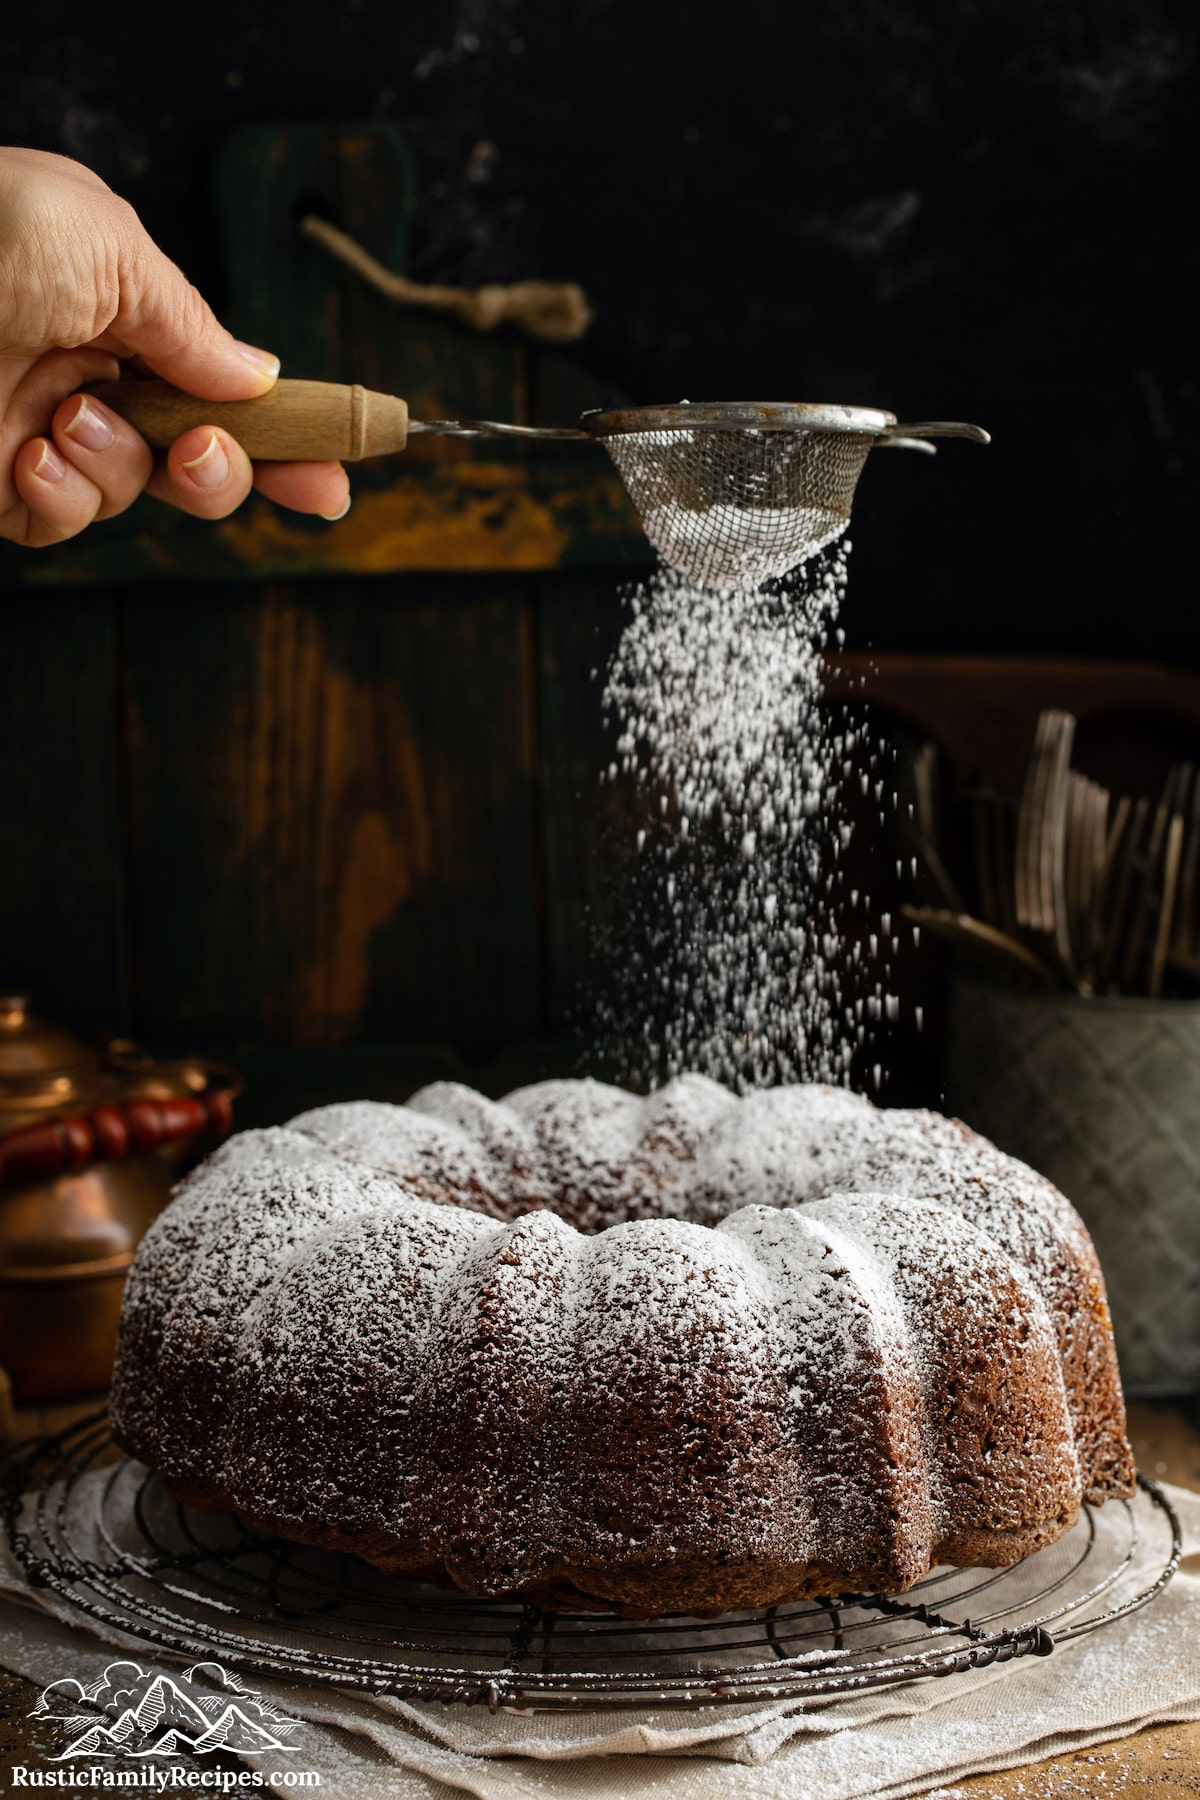 Dusting confectioners sugar on a marble cake.